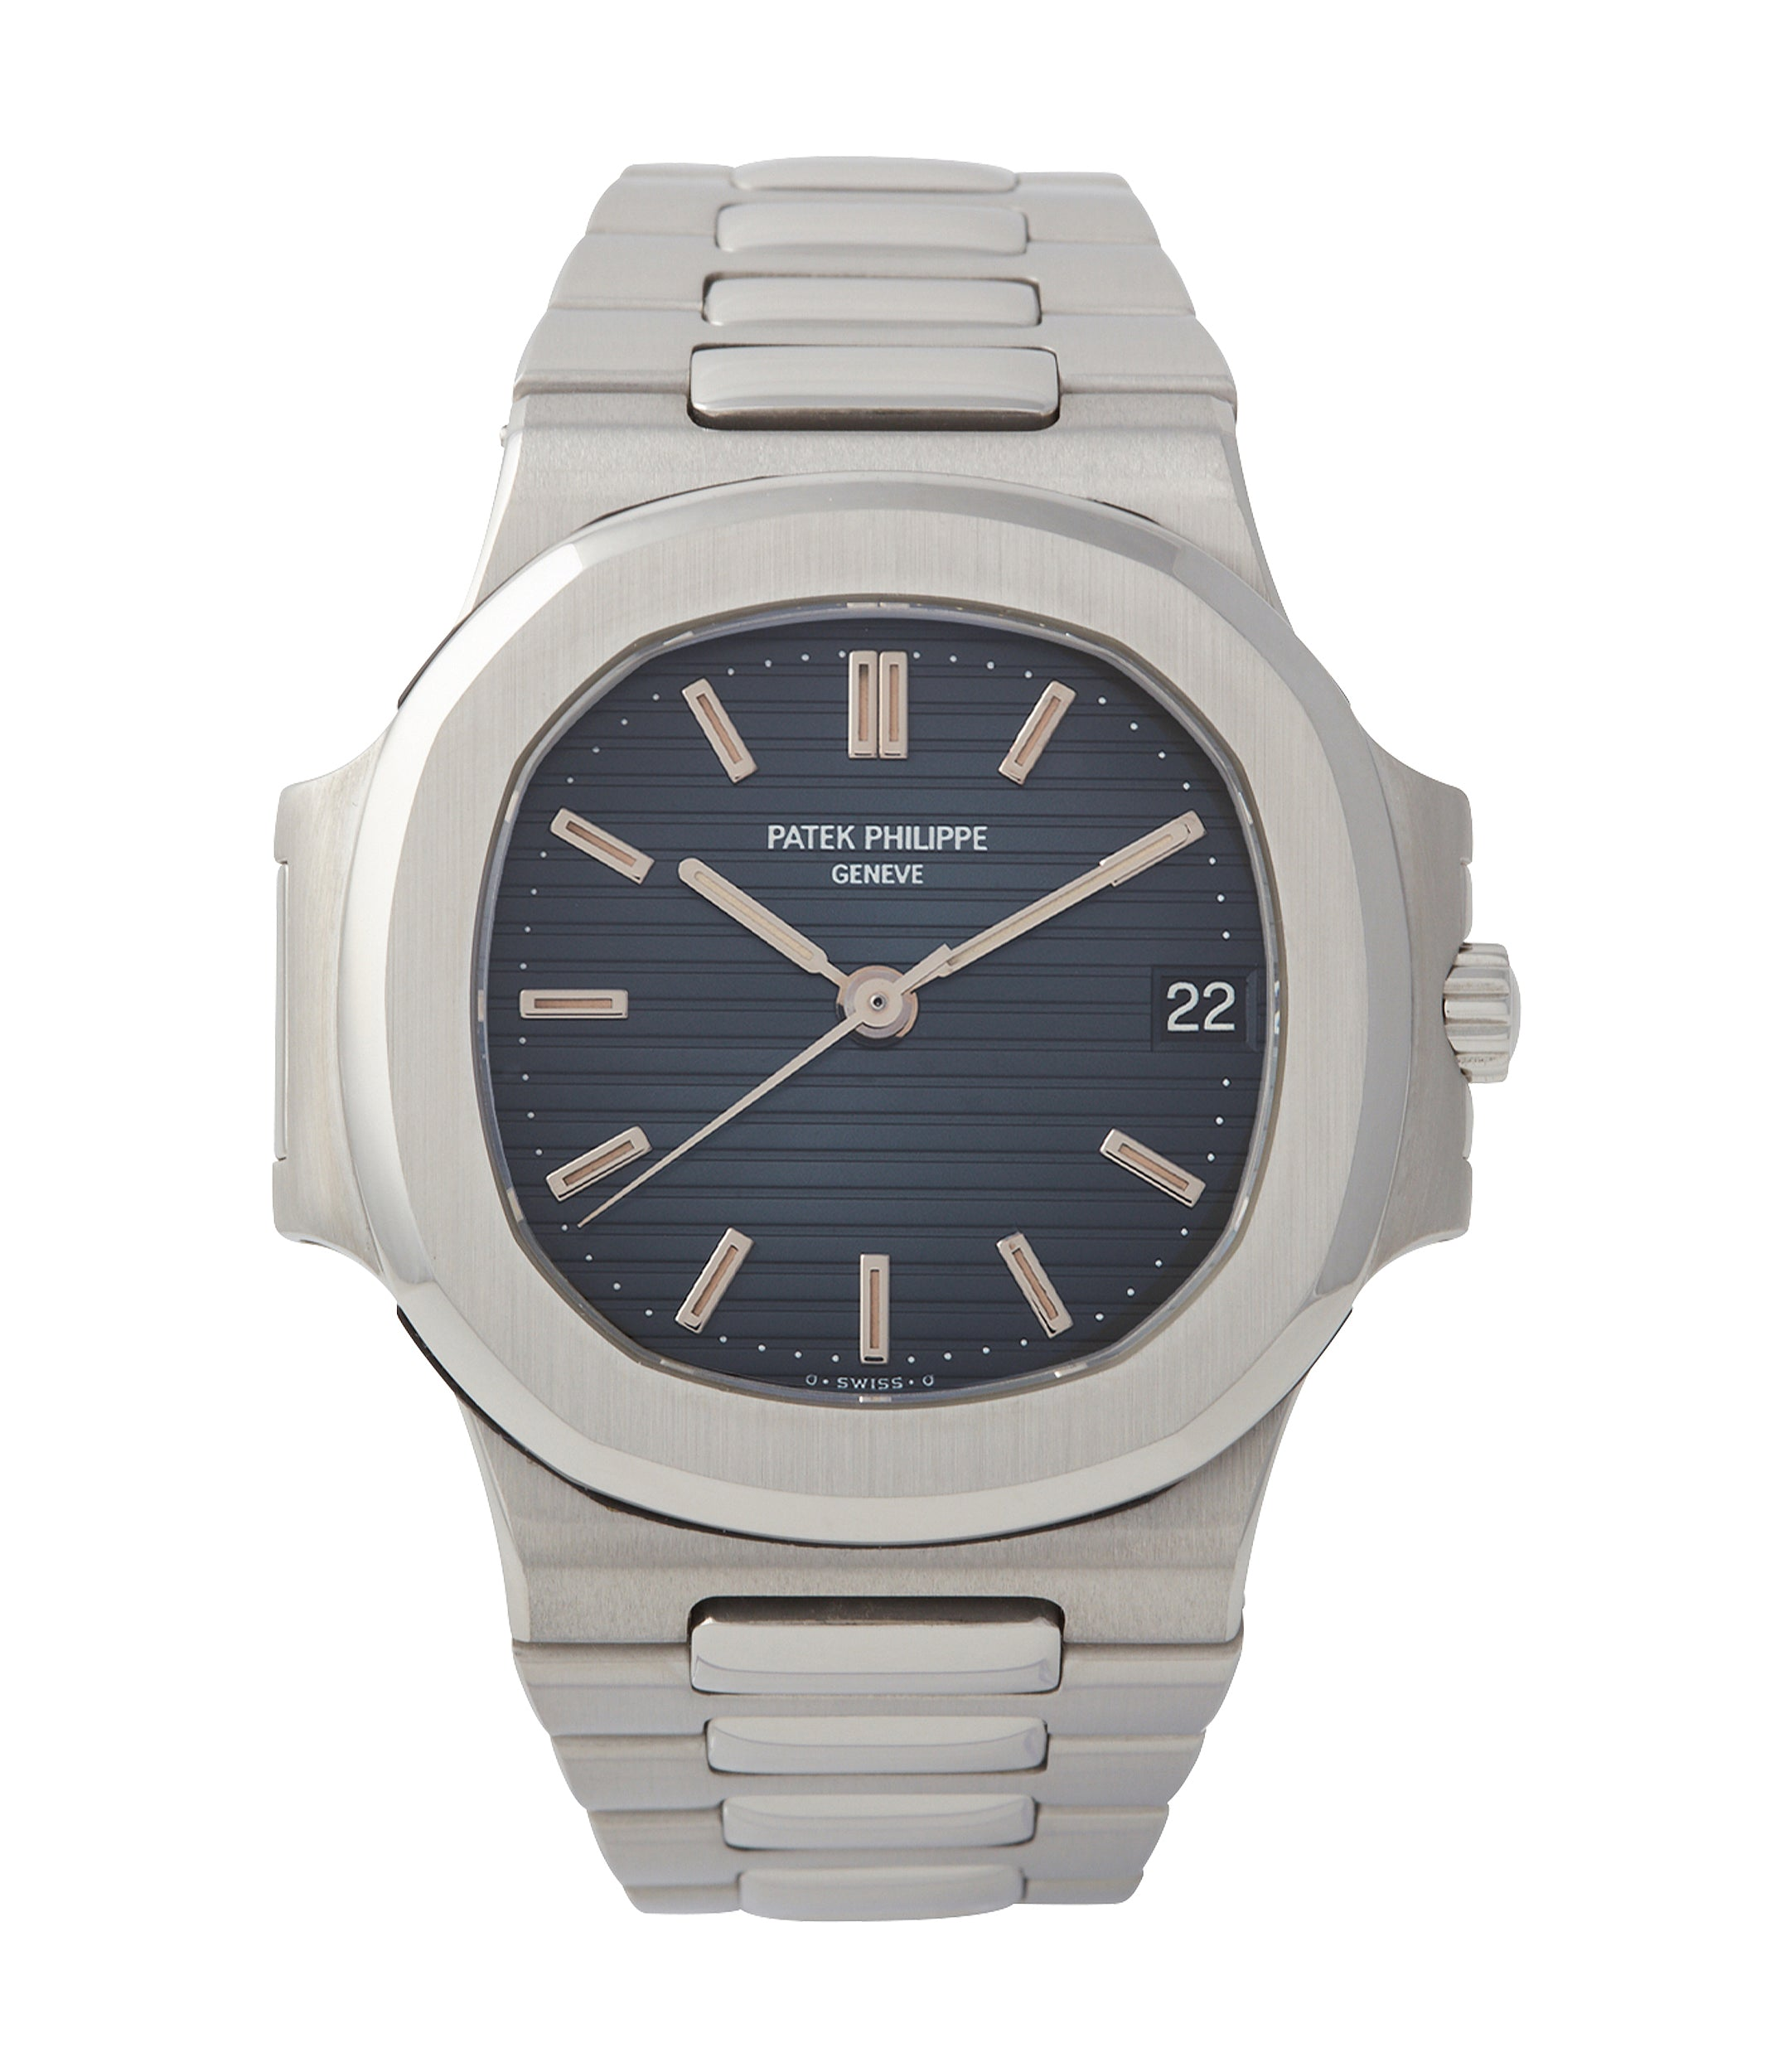 buy Patek Philippe Nautilus 3800 Sigma dial steel luxury sports watch for sale online A Collected Man London UK specialist rare watches